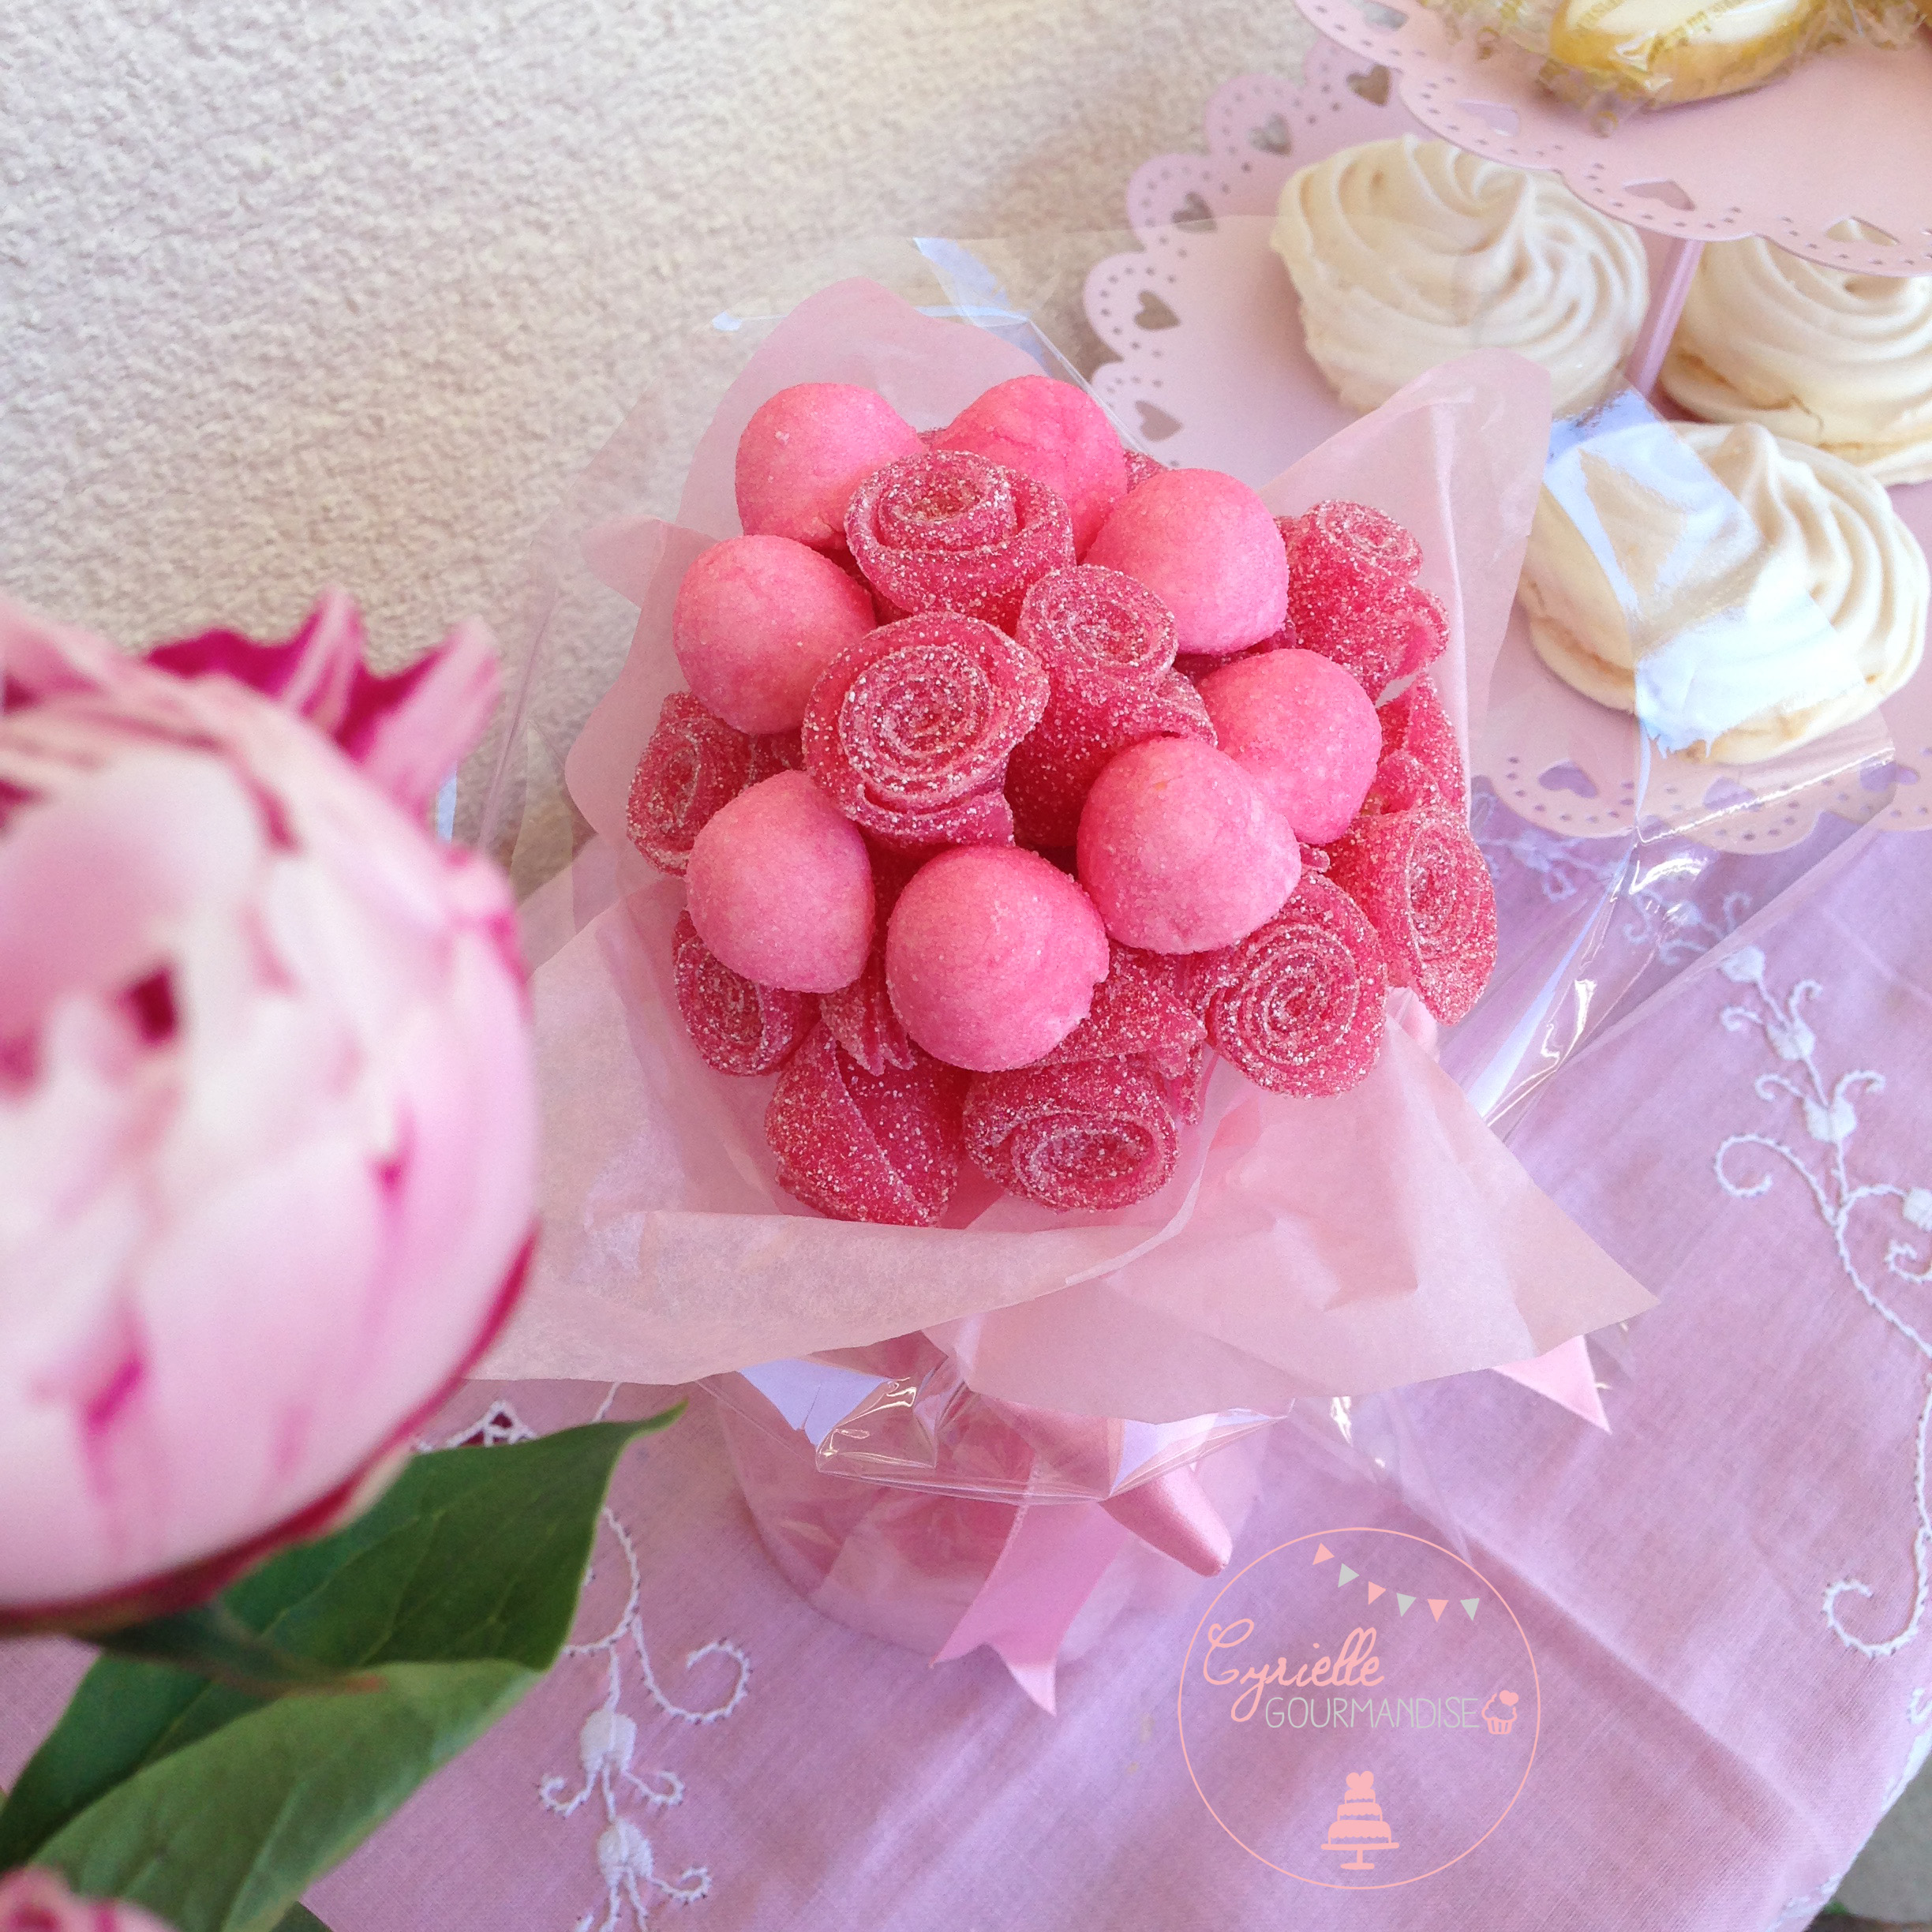 Bouquet bonbon 5